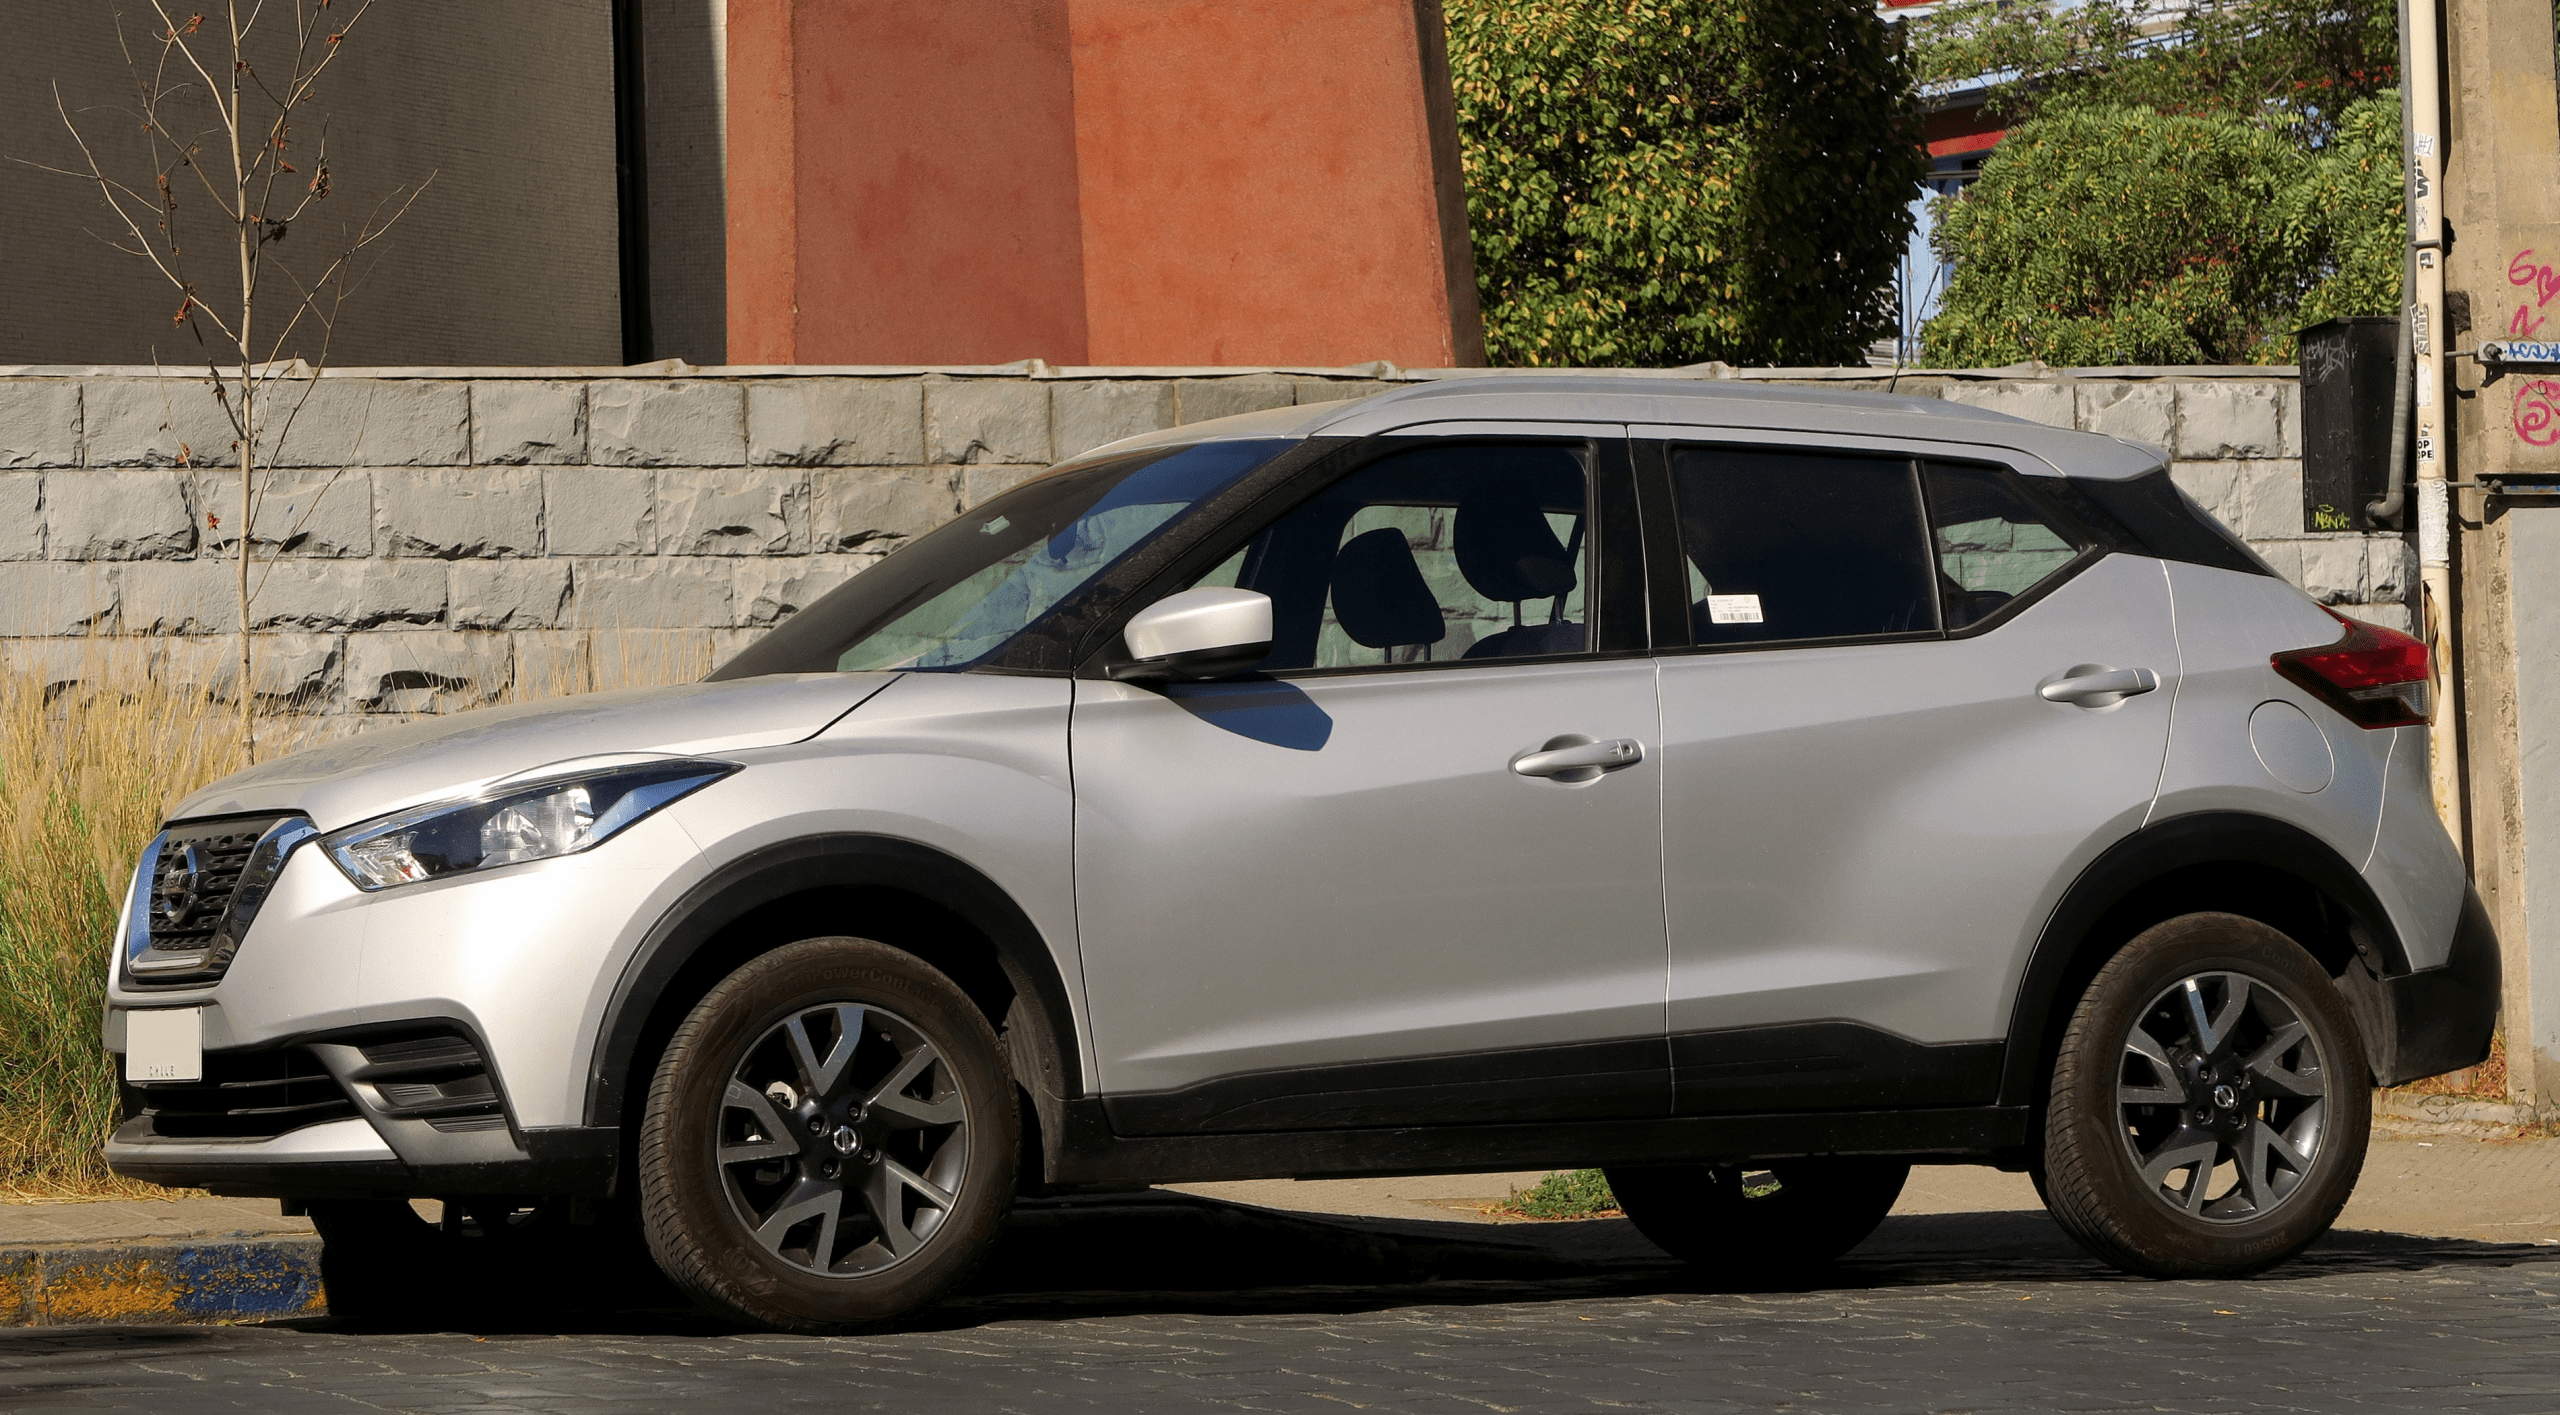 2021 Nissan Armada Price Design And Review In 2020 Nissan Armada Nissan Mitsubishi Outlander Gt